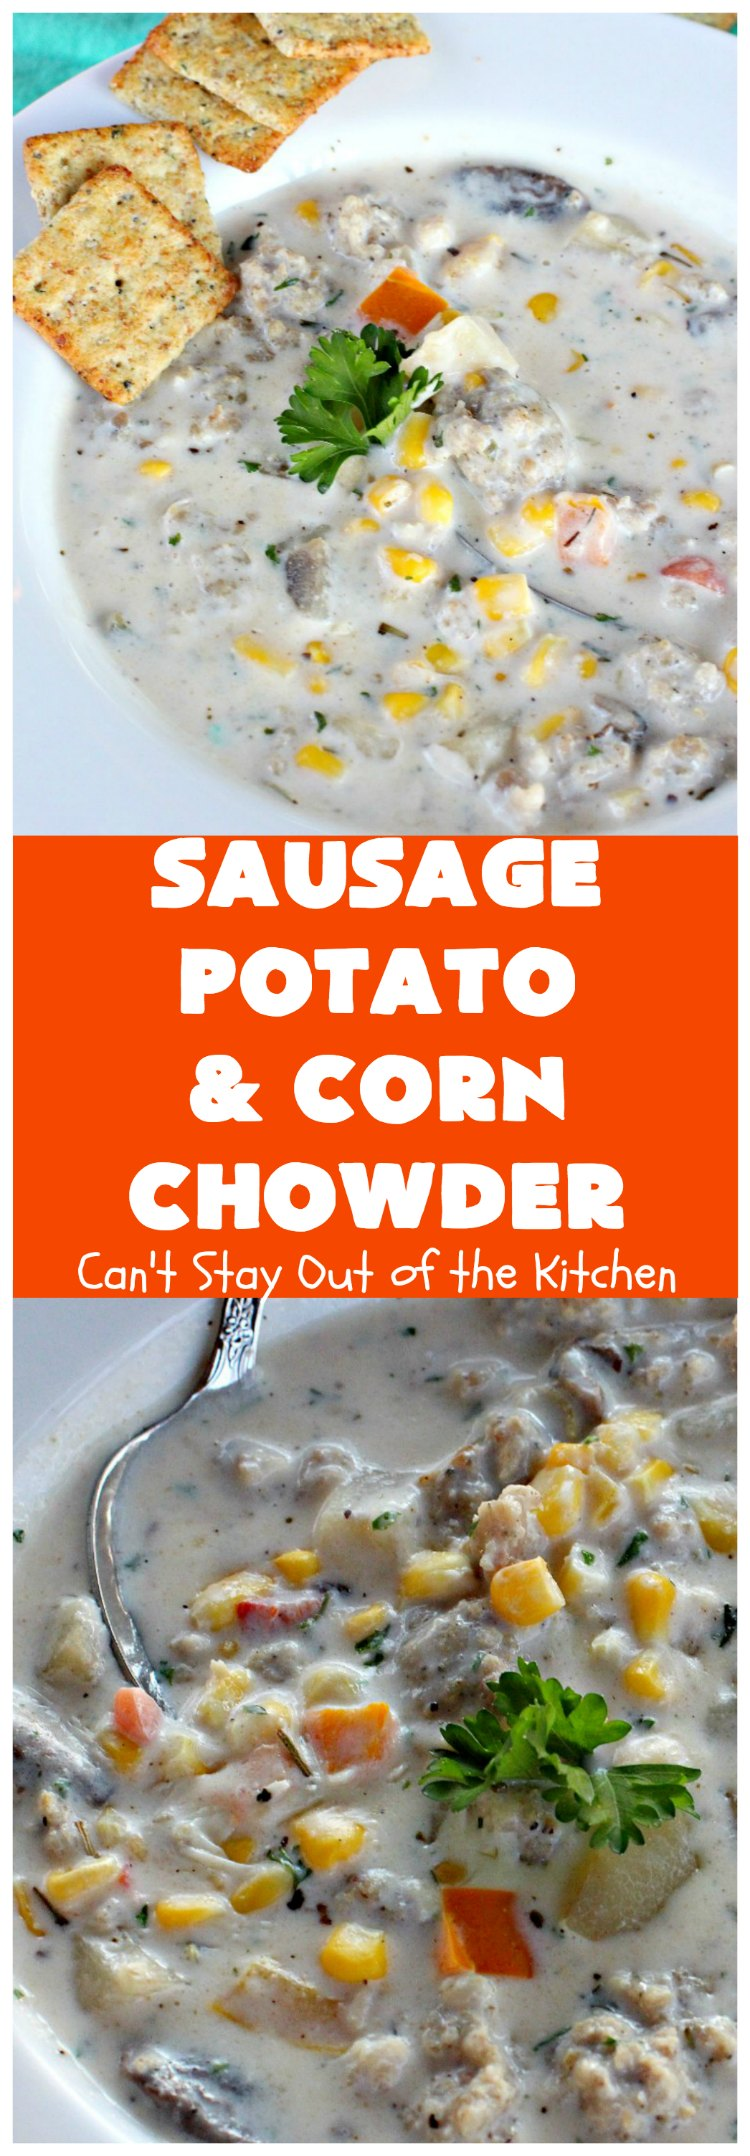 Sausage, Potato and Corn Chowder | Can't Stay Out of the Kitchen